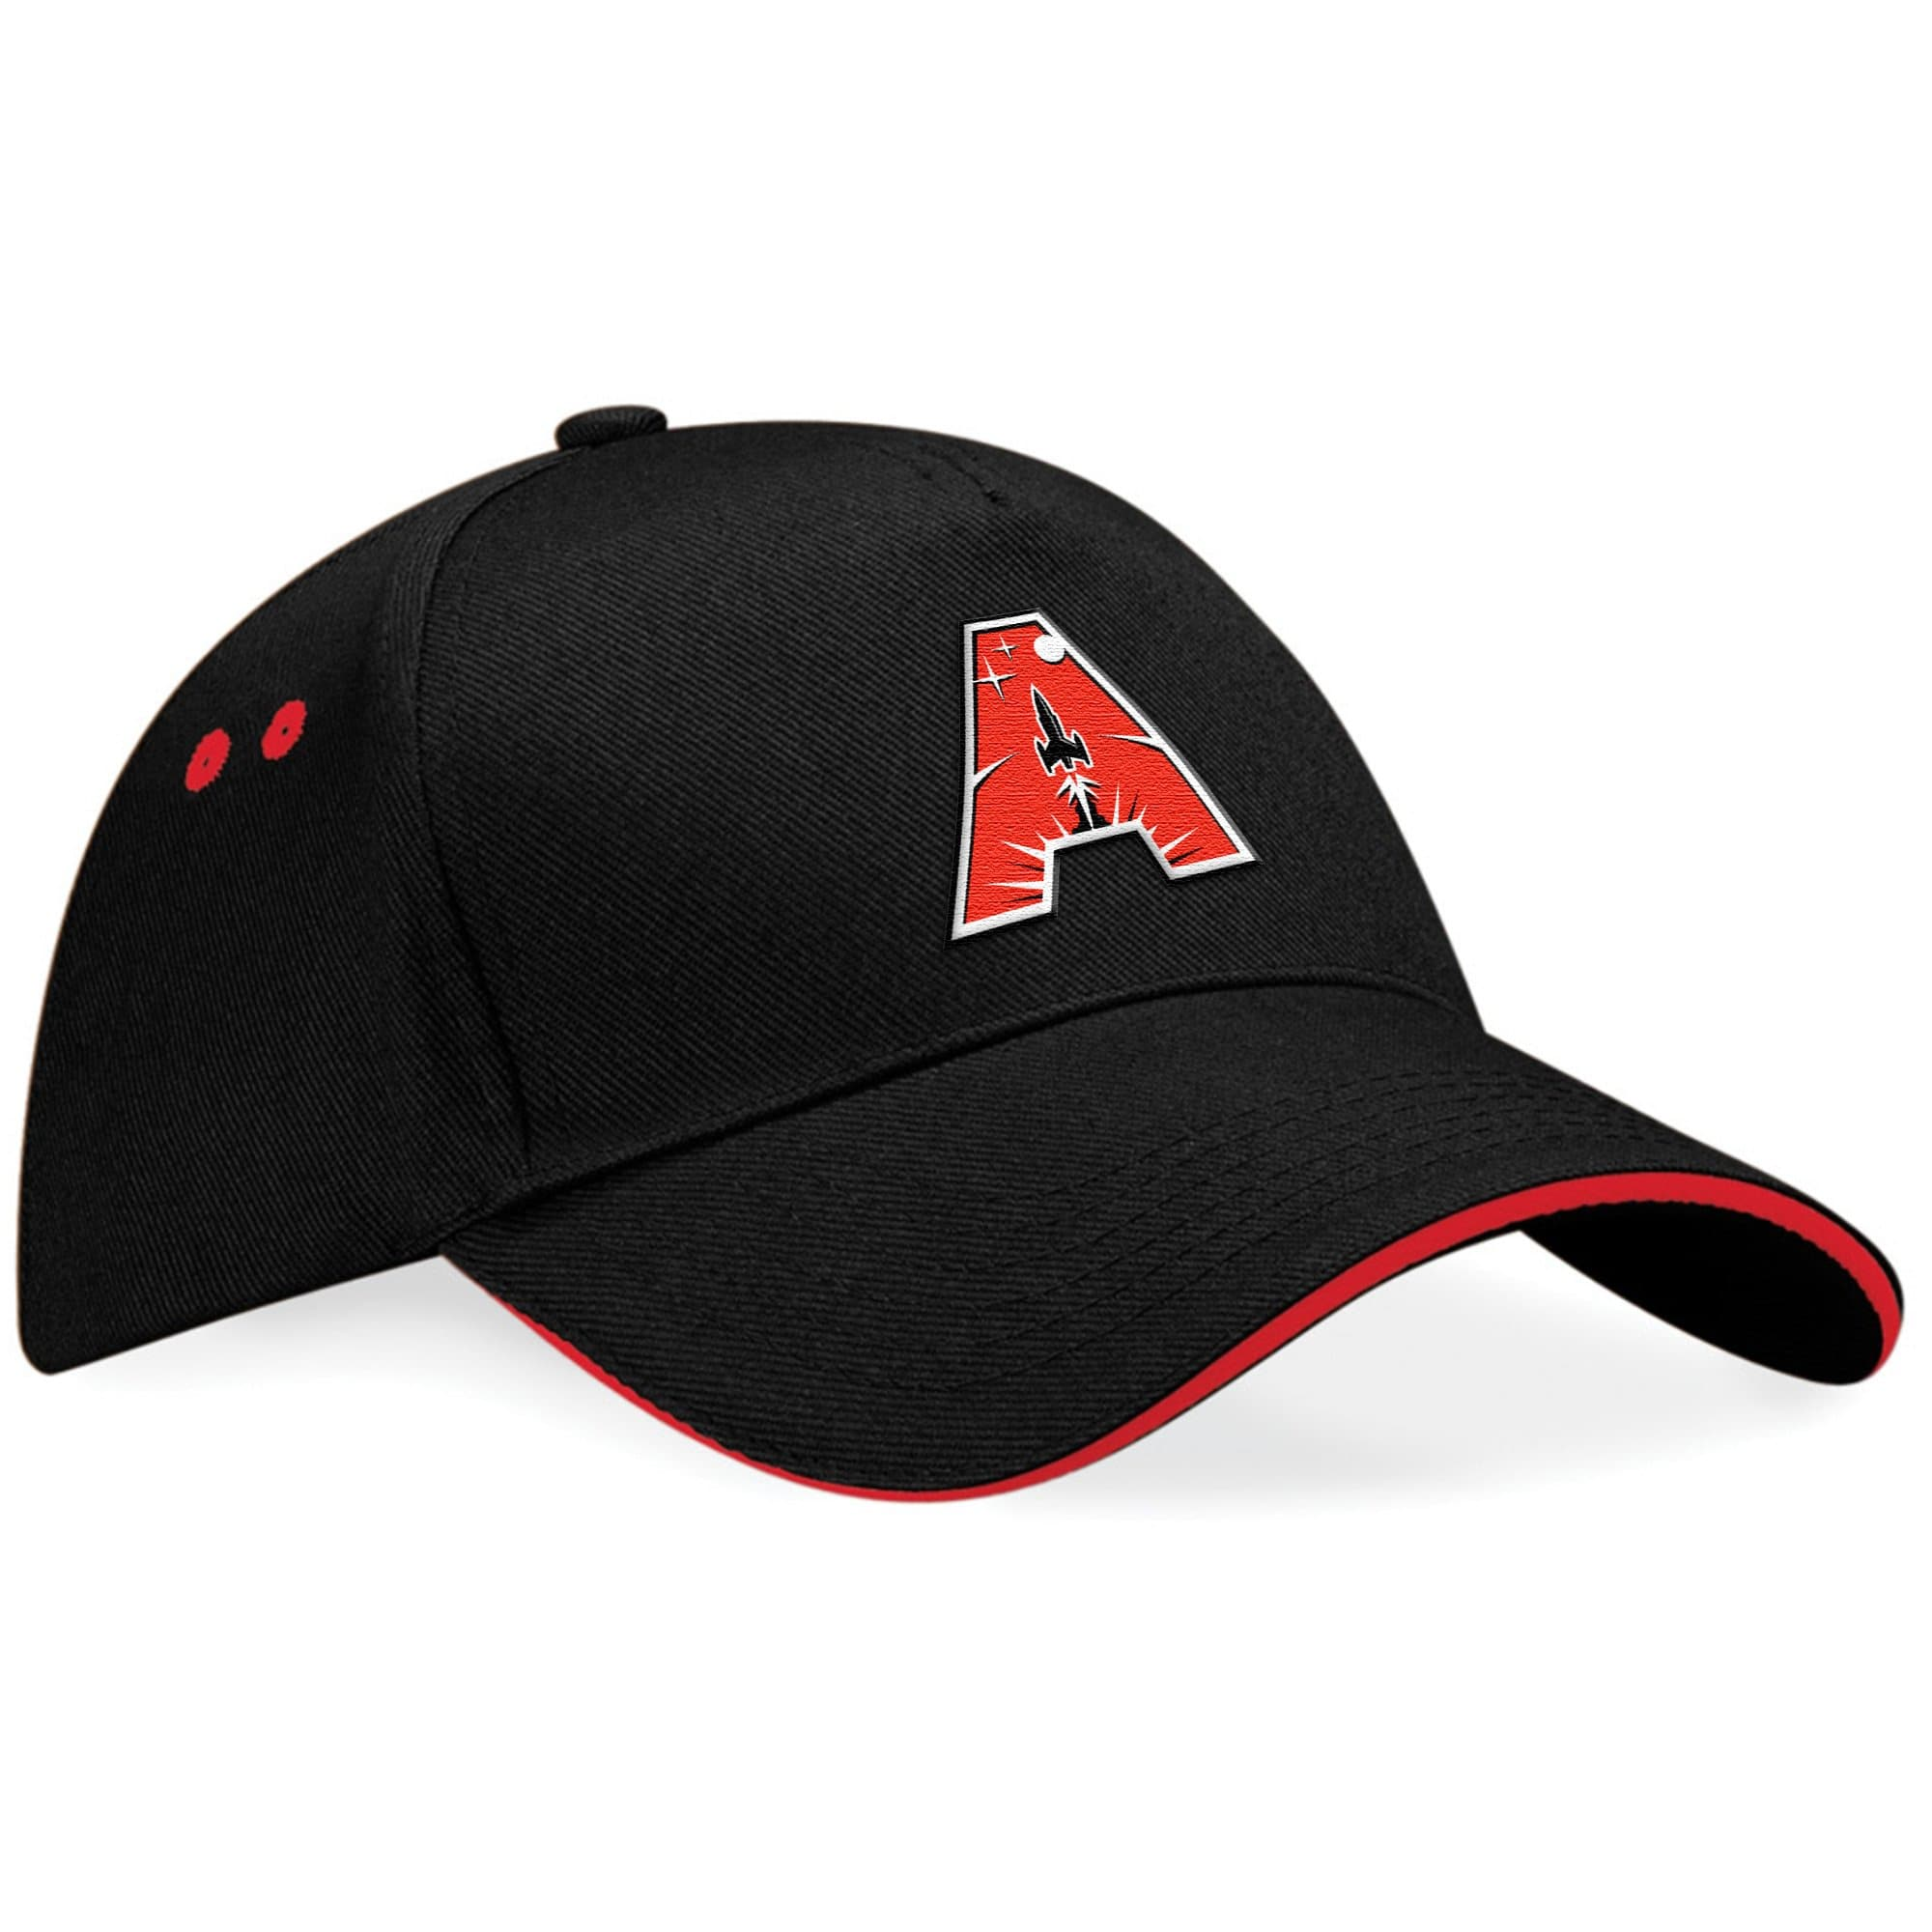 Gerry Anderson 'A' Logo Baseball Cap [Official & Exclusive] - The Gerry Anderson Store